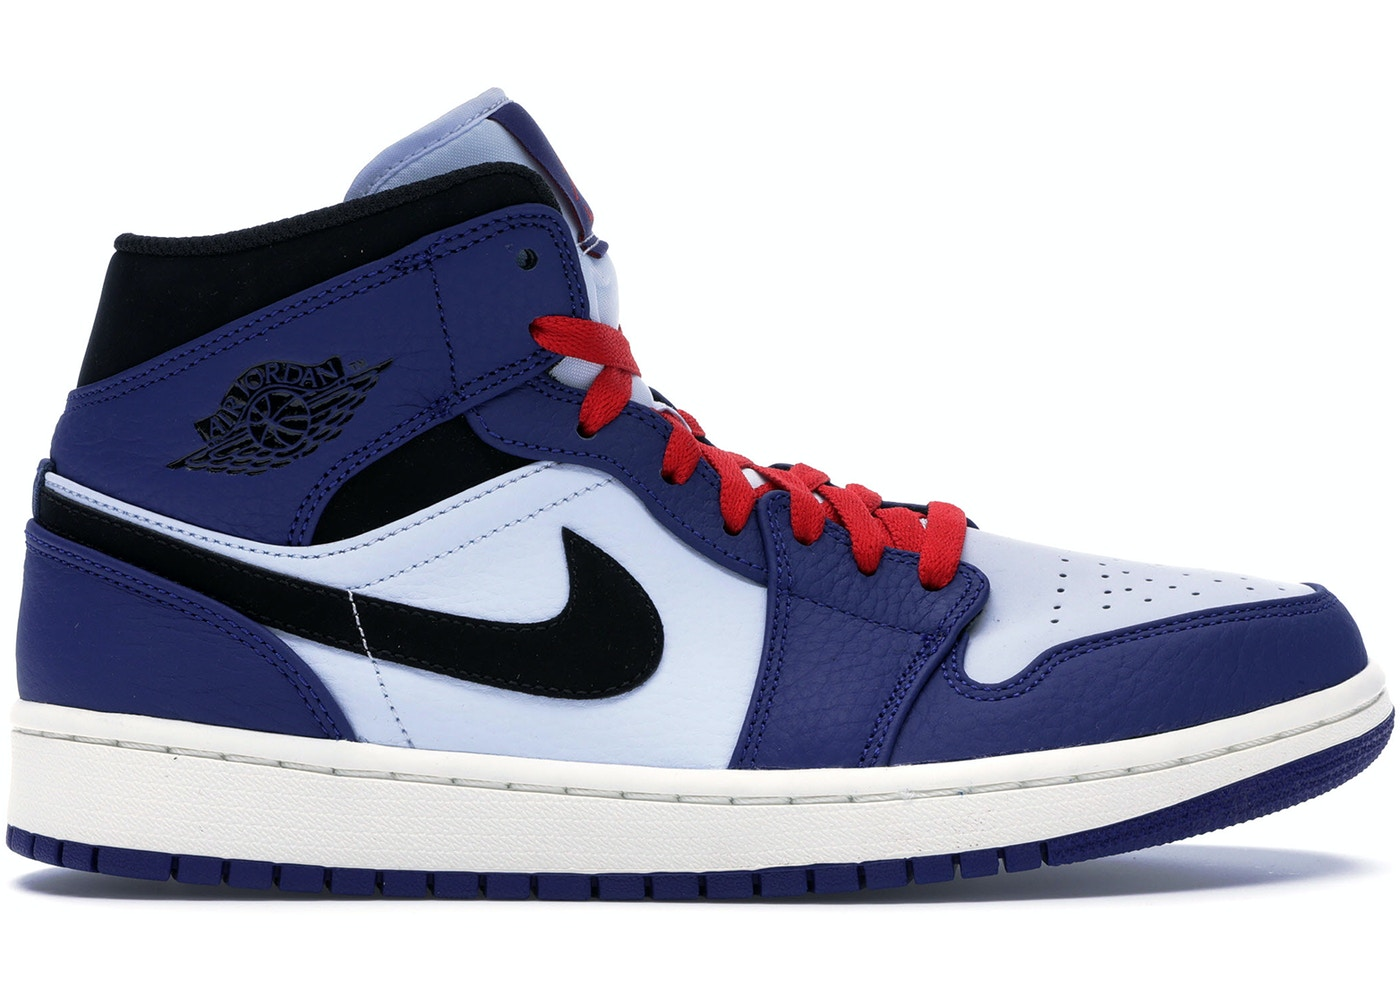 8f742a17c84168 Jordan 1 Mid Deep Royal Blue Black - 852542-400